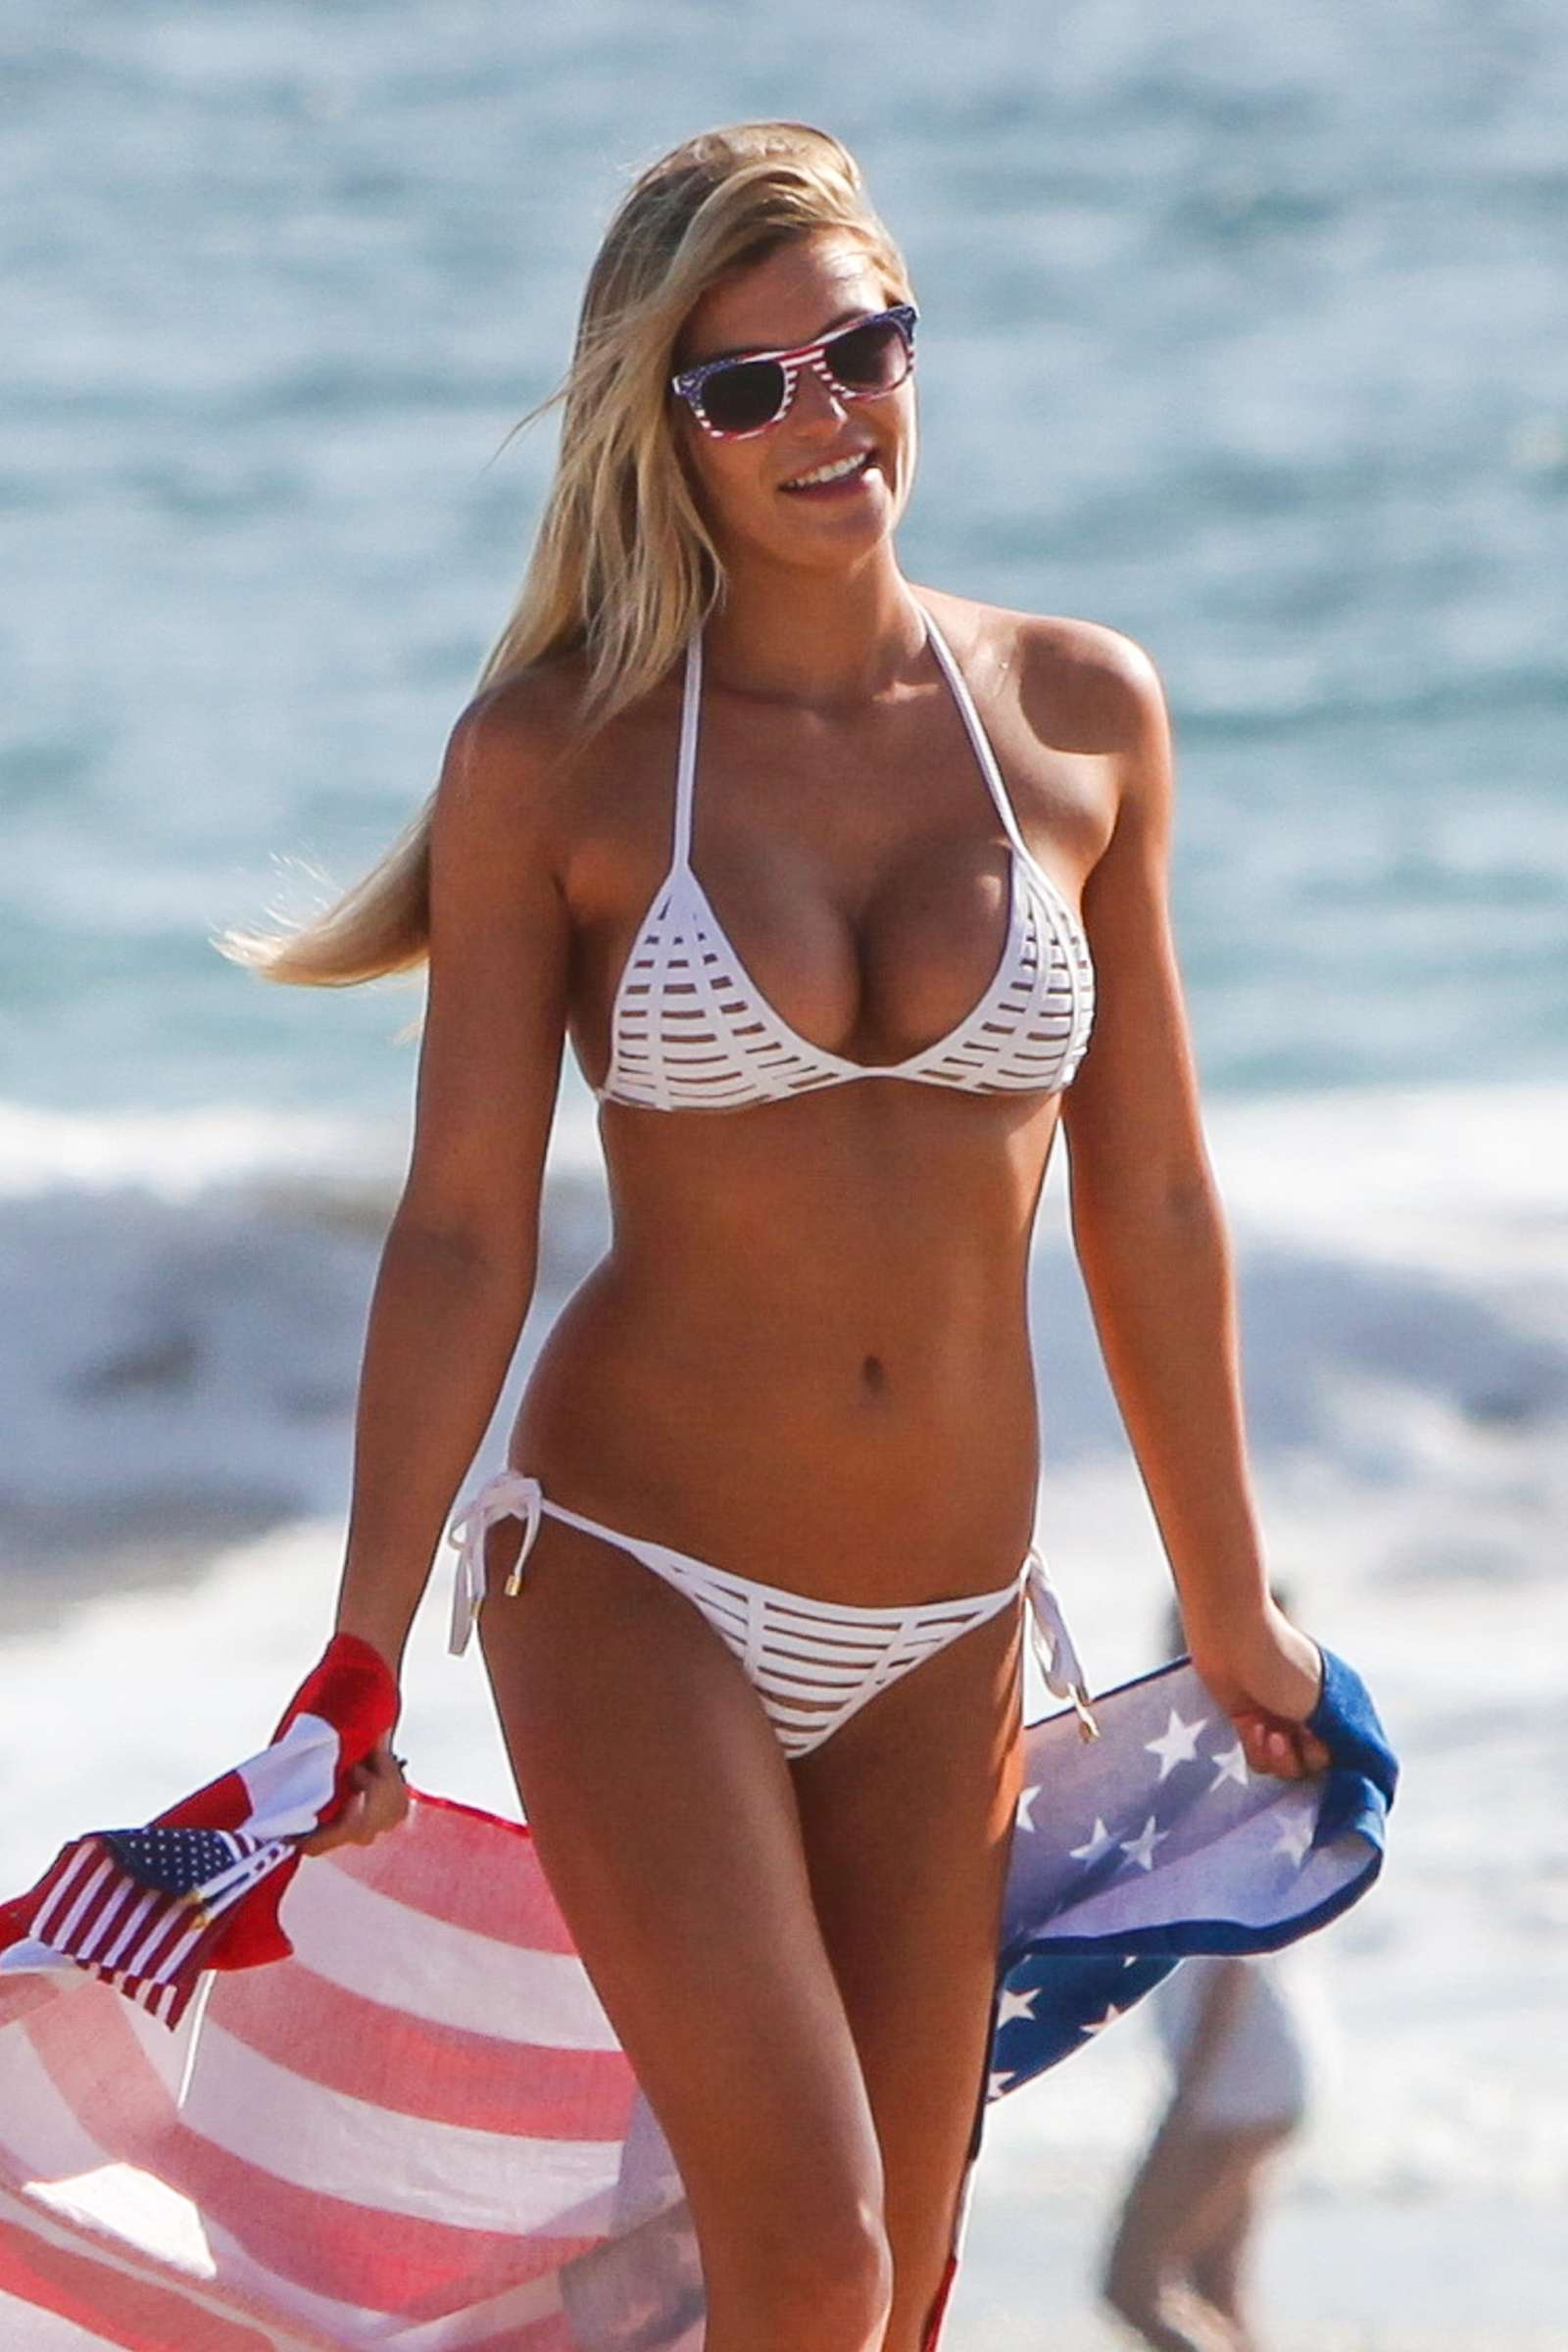 Samantha Hoopes in White Bikini on the beach in Malibu